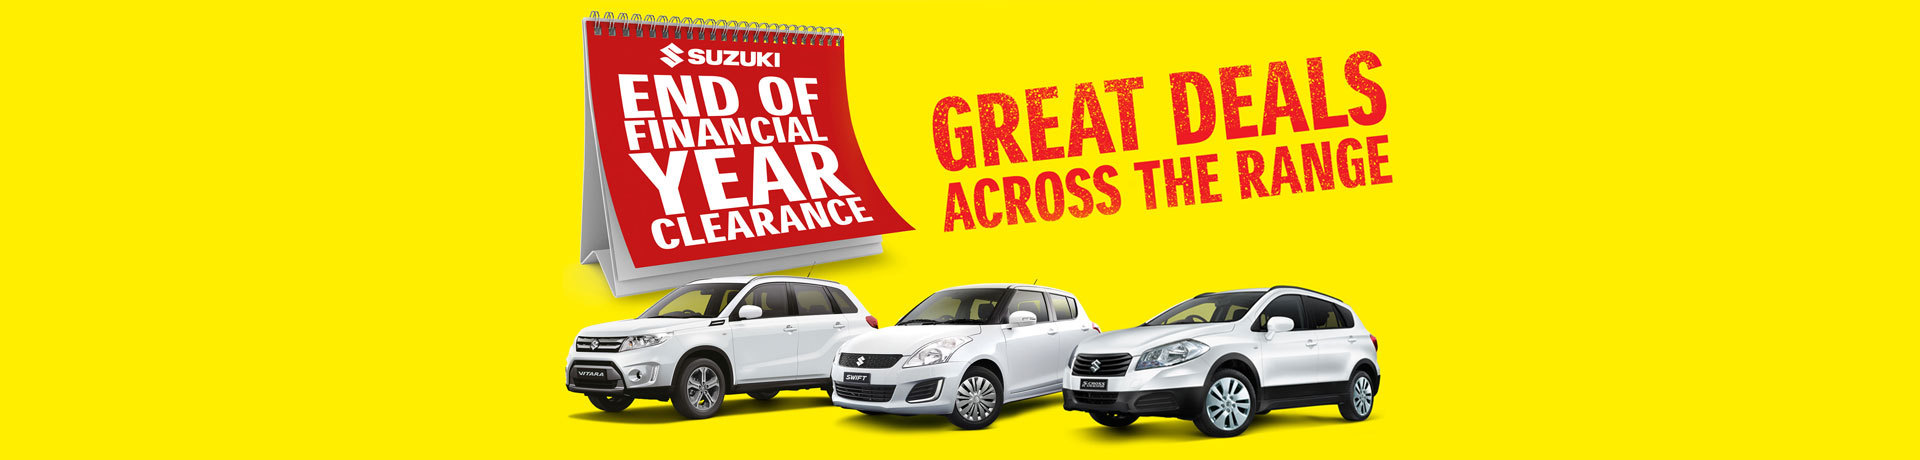 Suzuki - End of Financial Year Clearance - Great Deals Across the Range